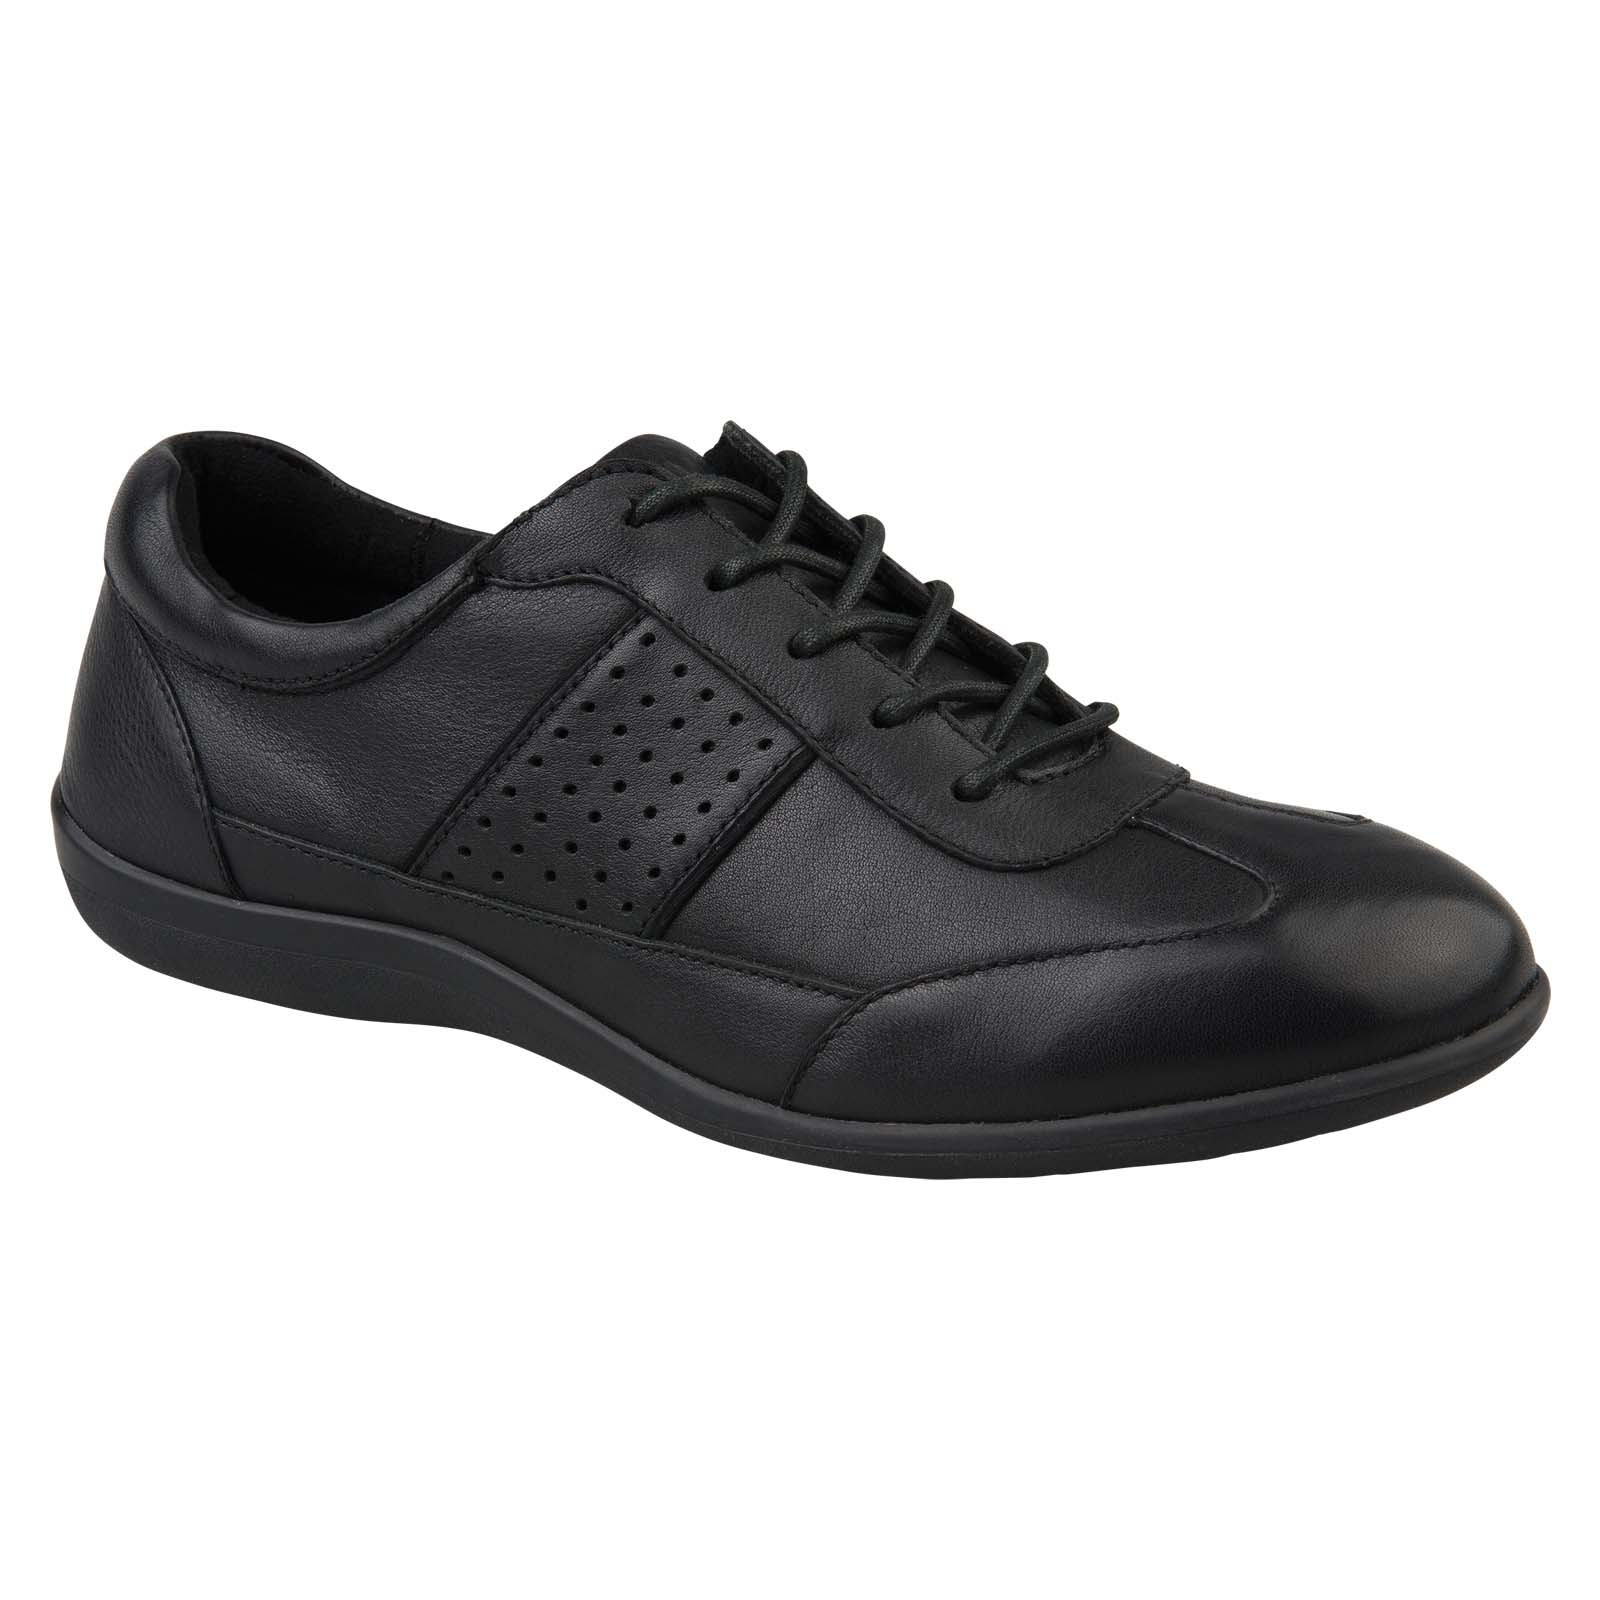 Revere Seattle black damesveterschoen